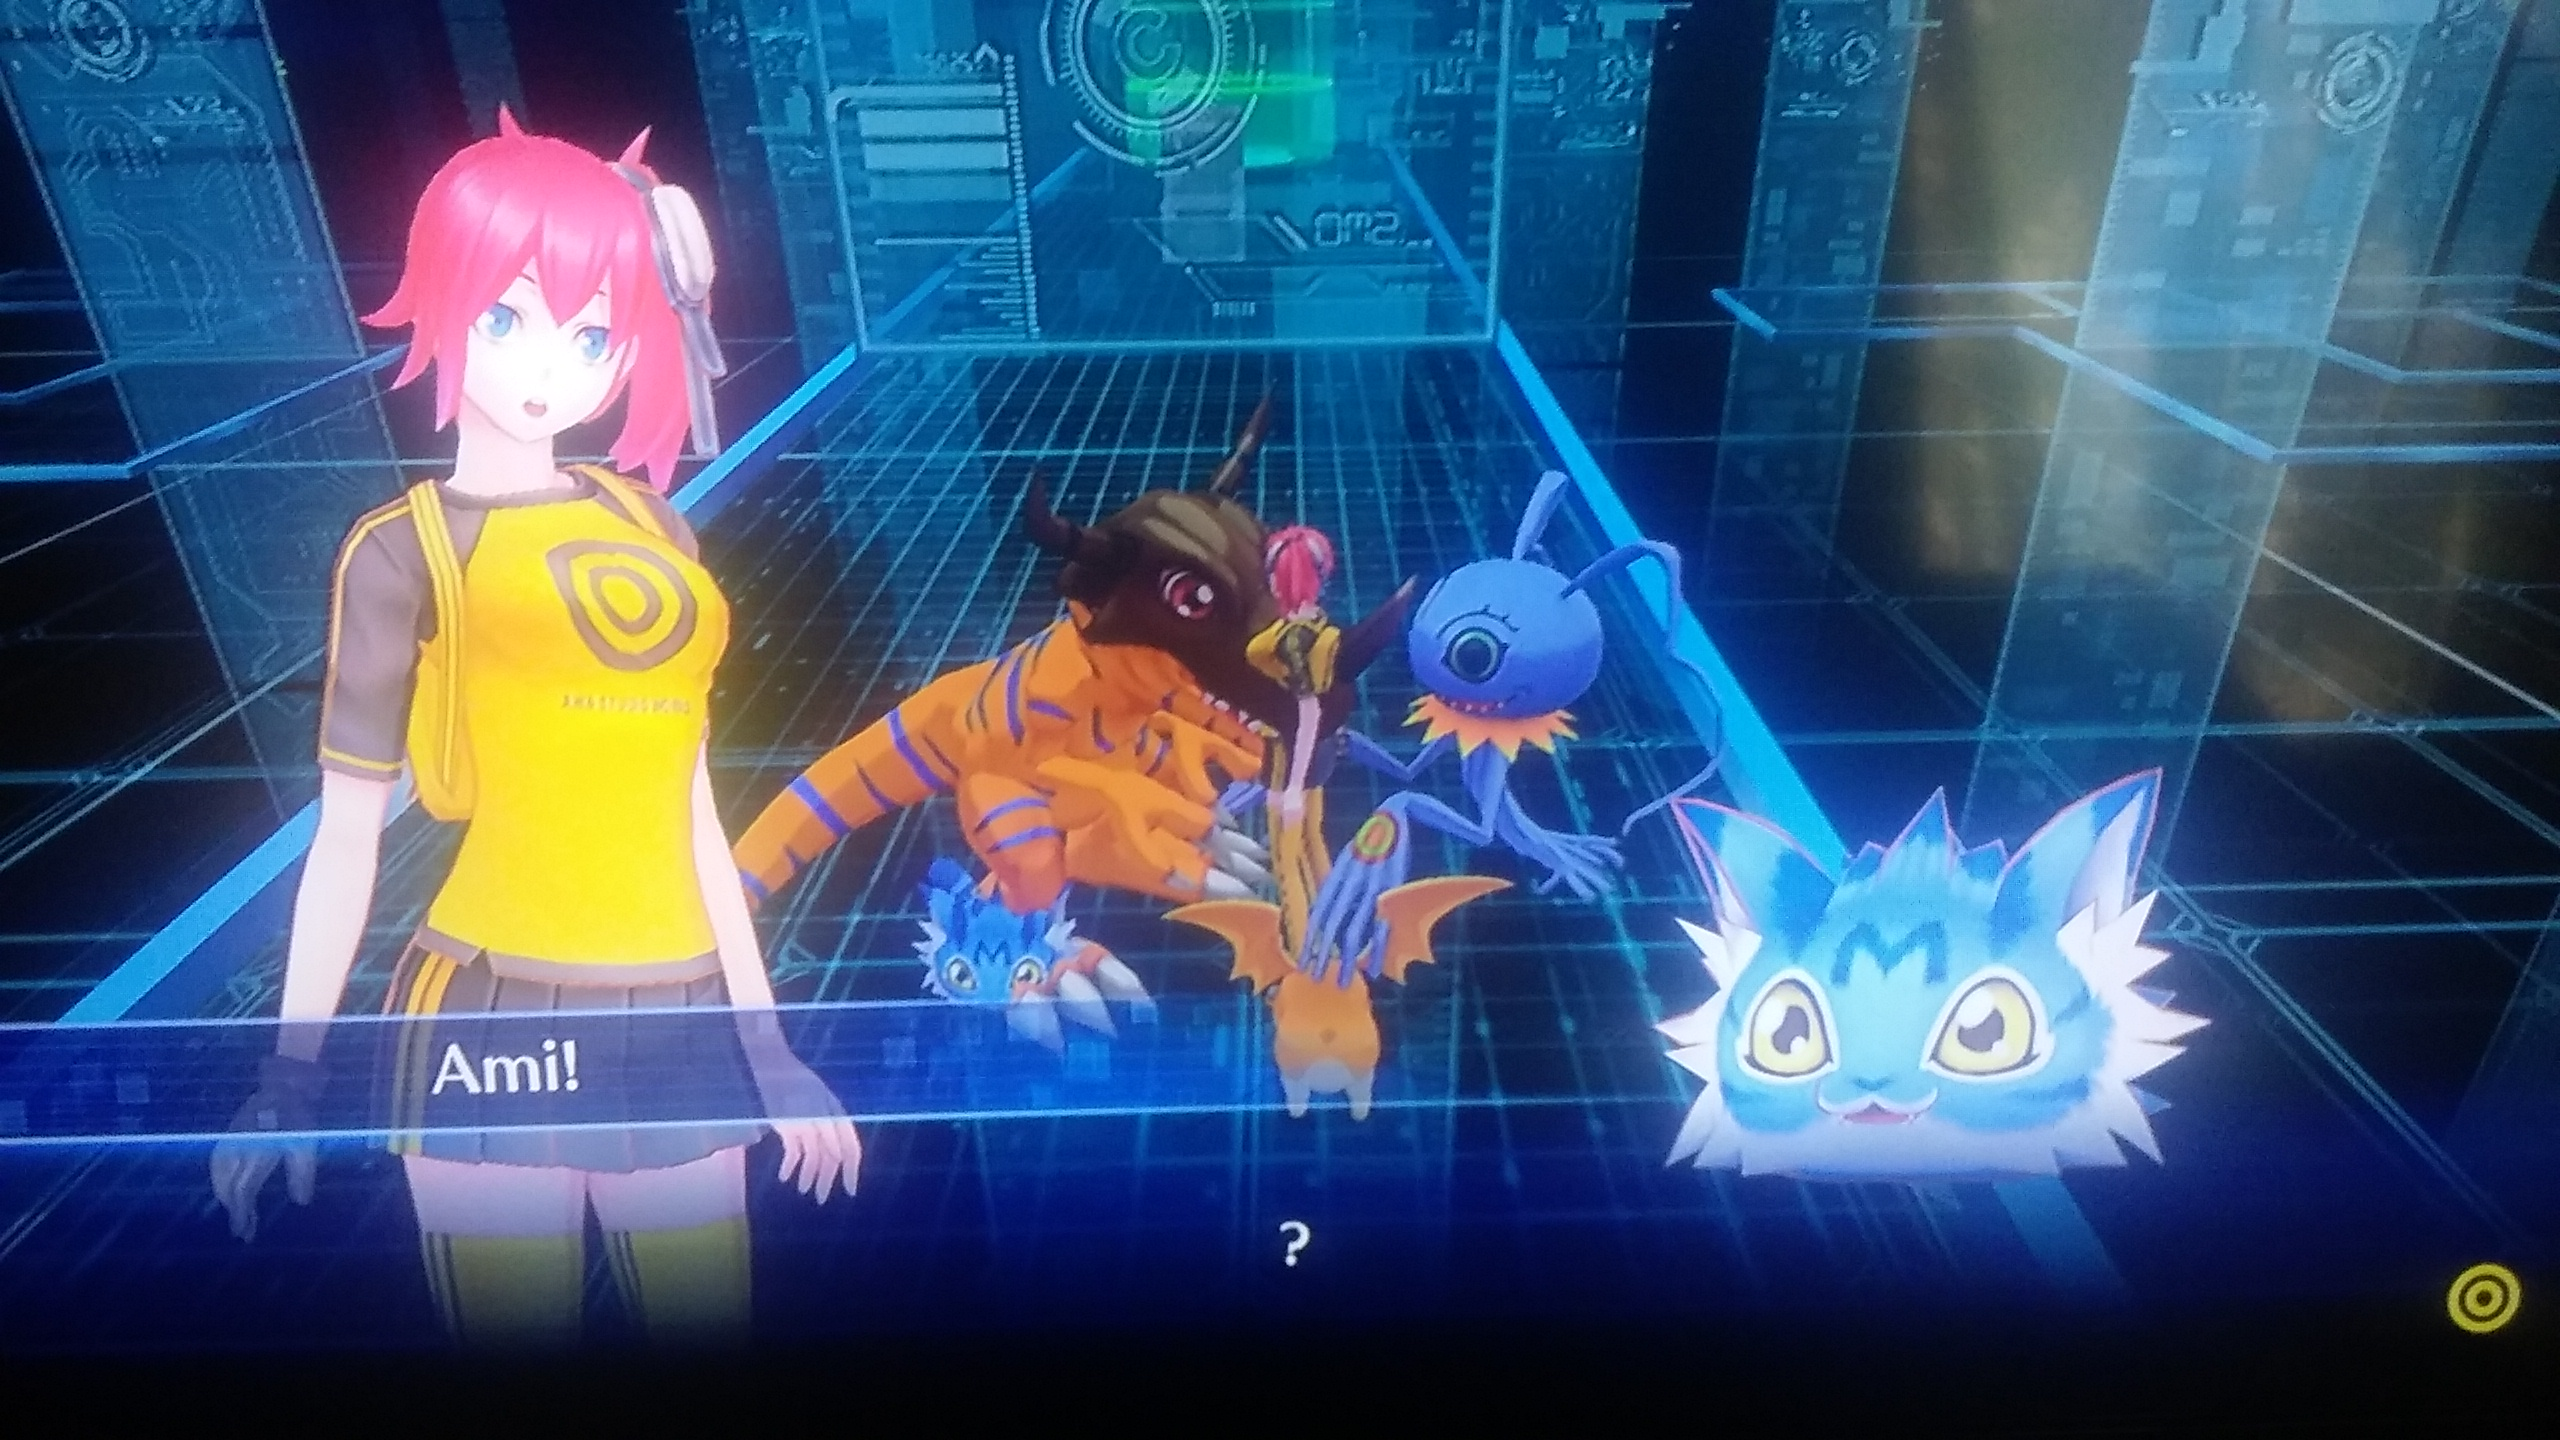 Digimon Imagens Digimon Story Cyber Sleuth Ami Hd Wallpaper And